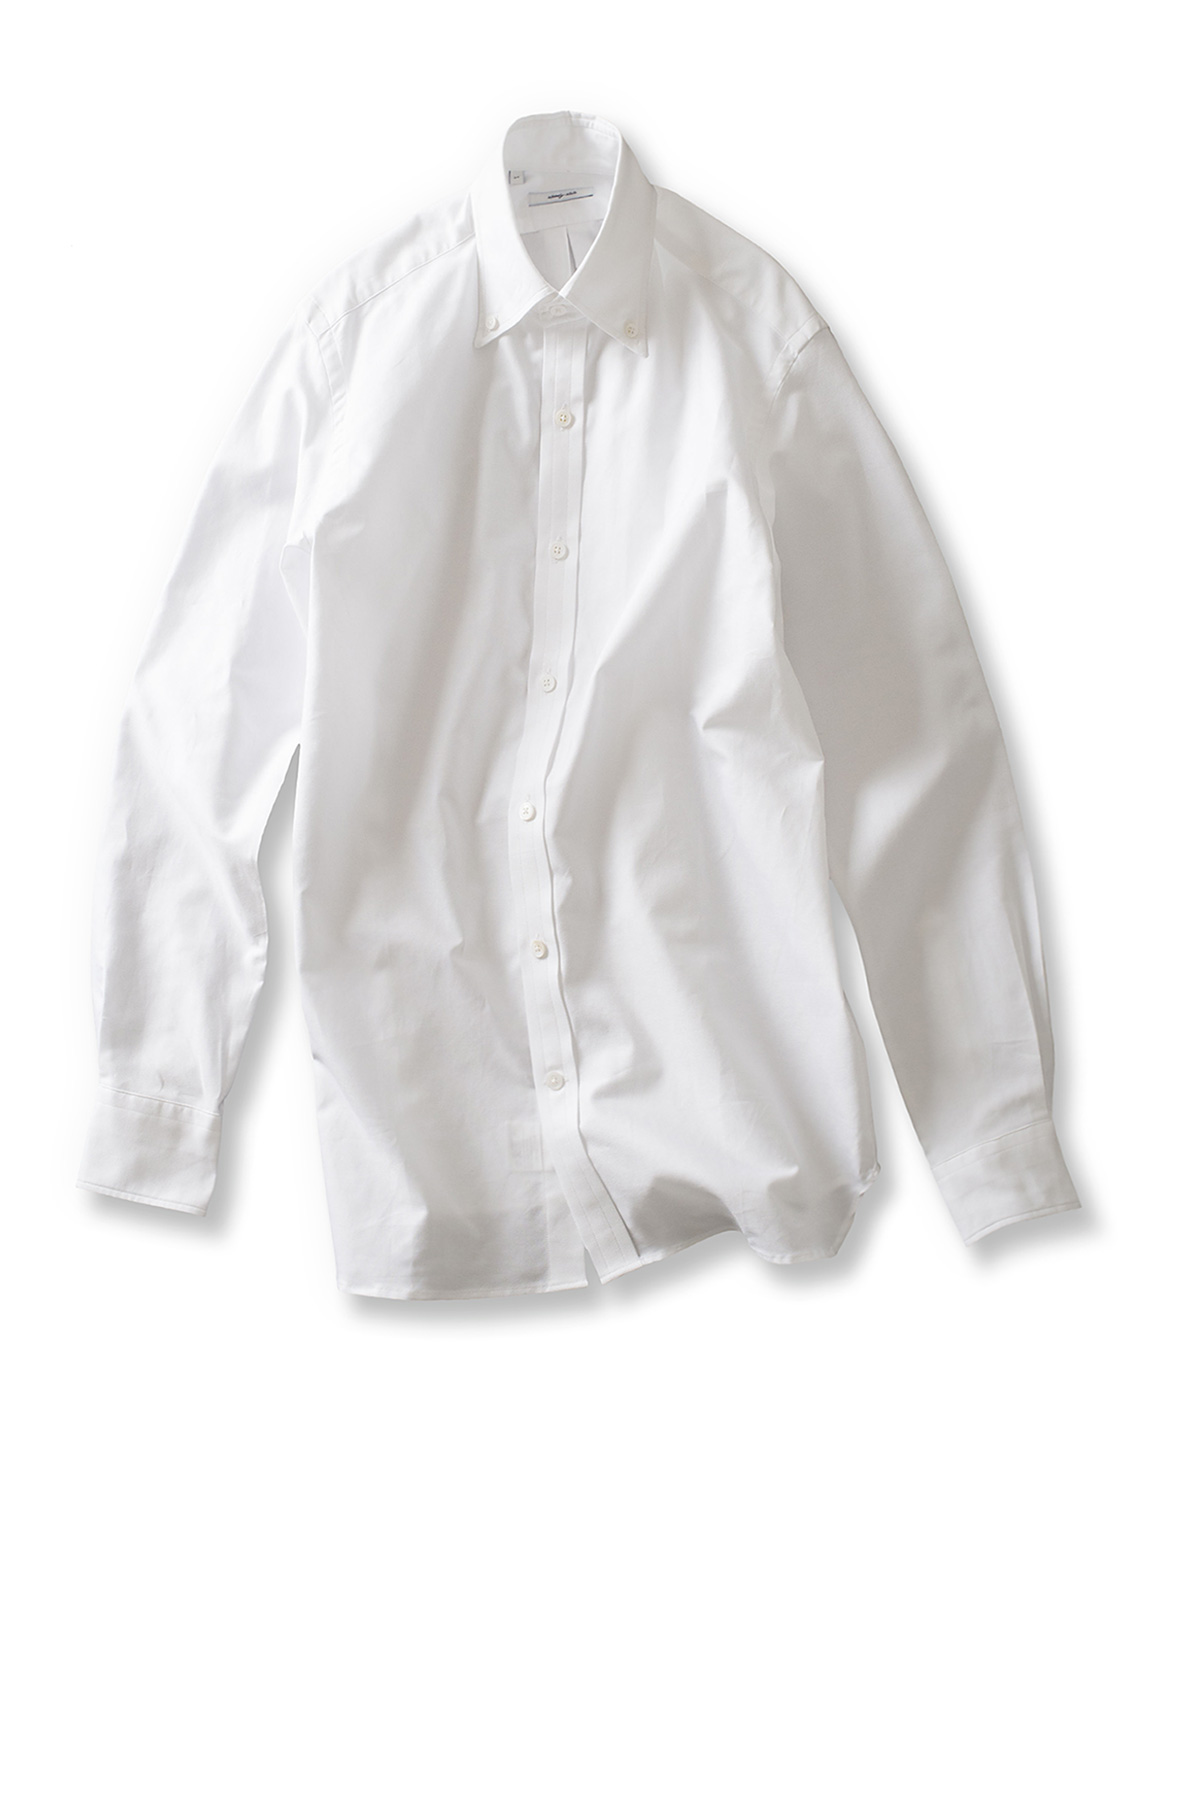 steady state : Casual Shirt (White)